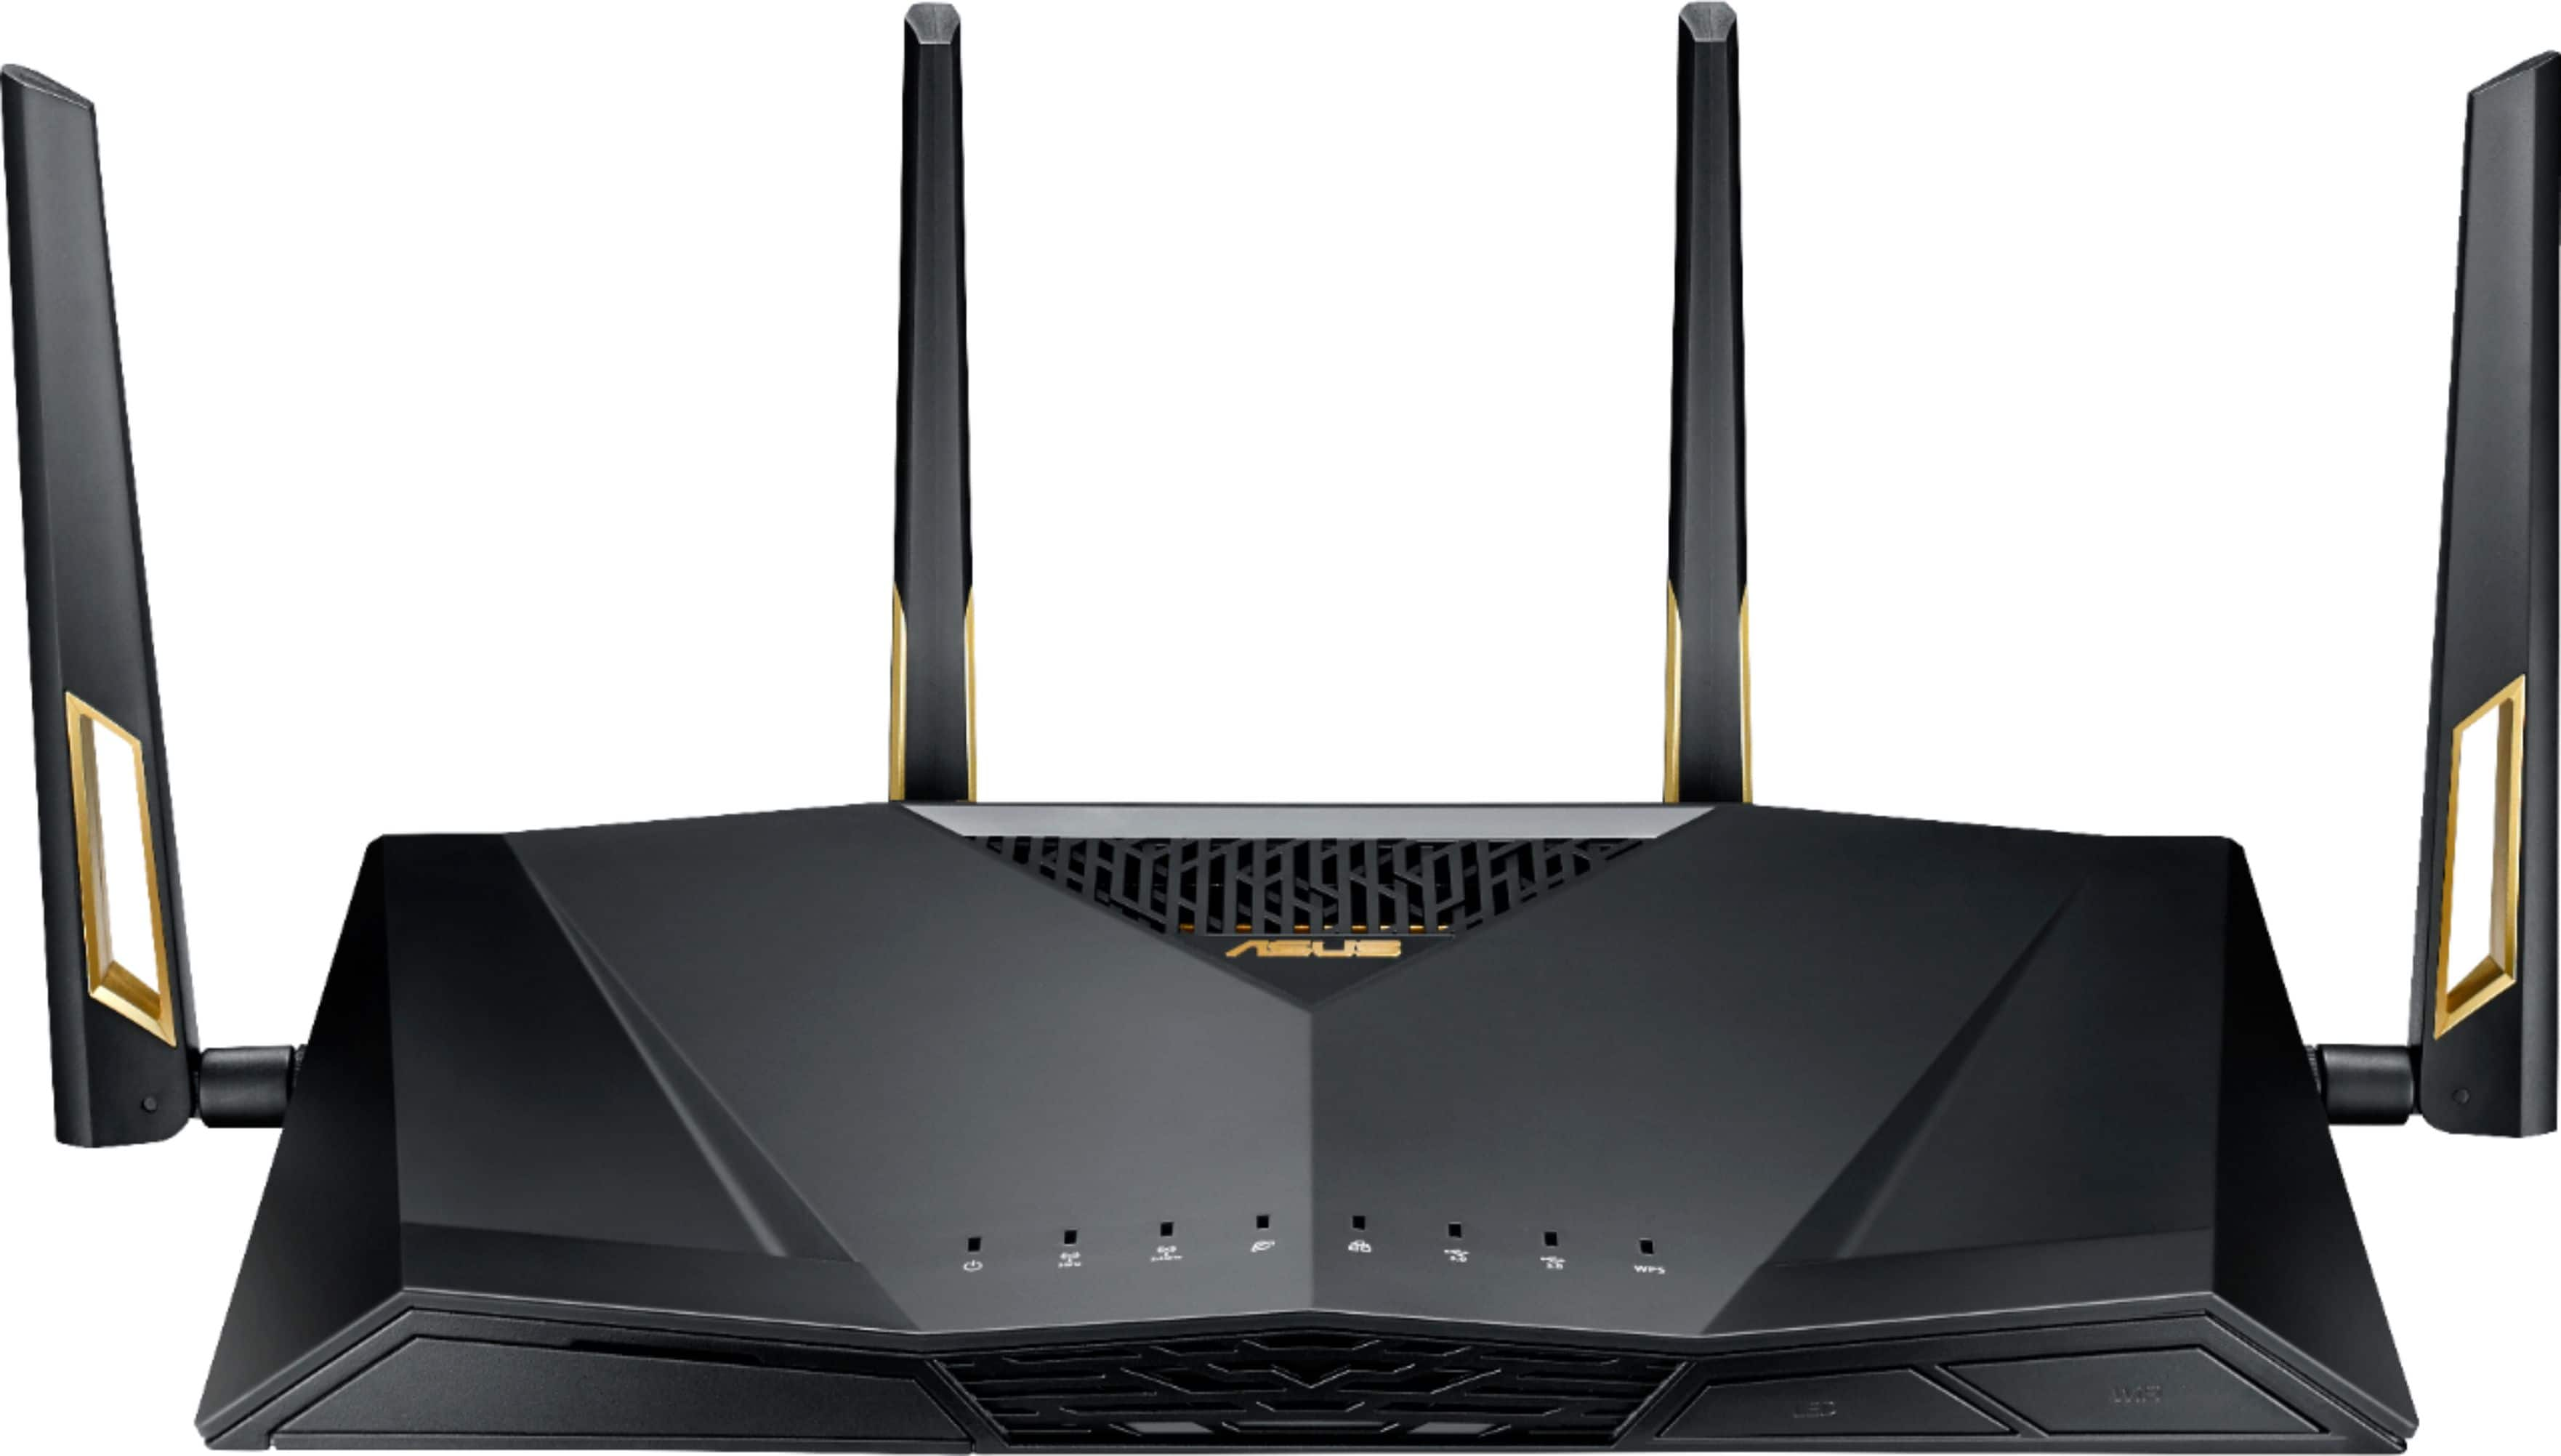 ASUS AX6000 Dual Band Wi-Fi 6 Router RT-AX88U - Best Buy $299.99